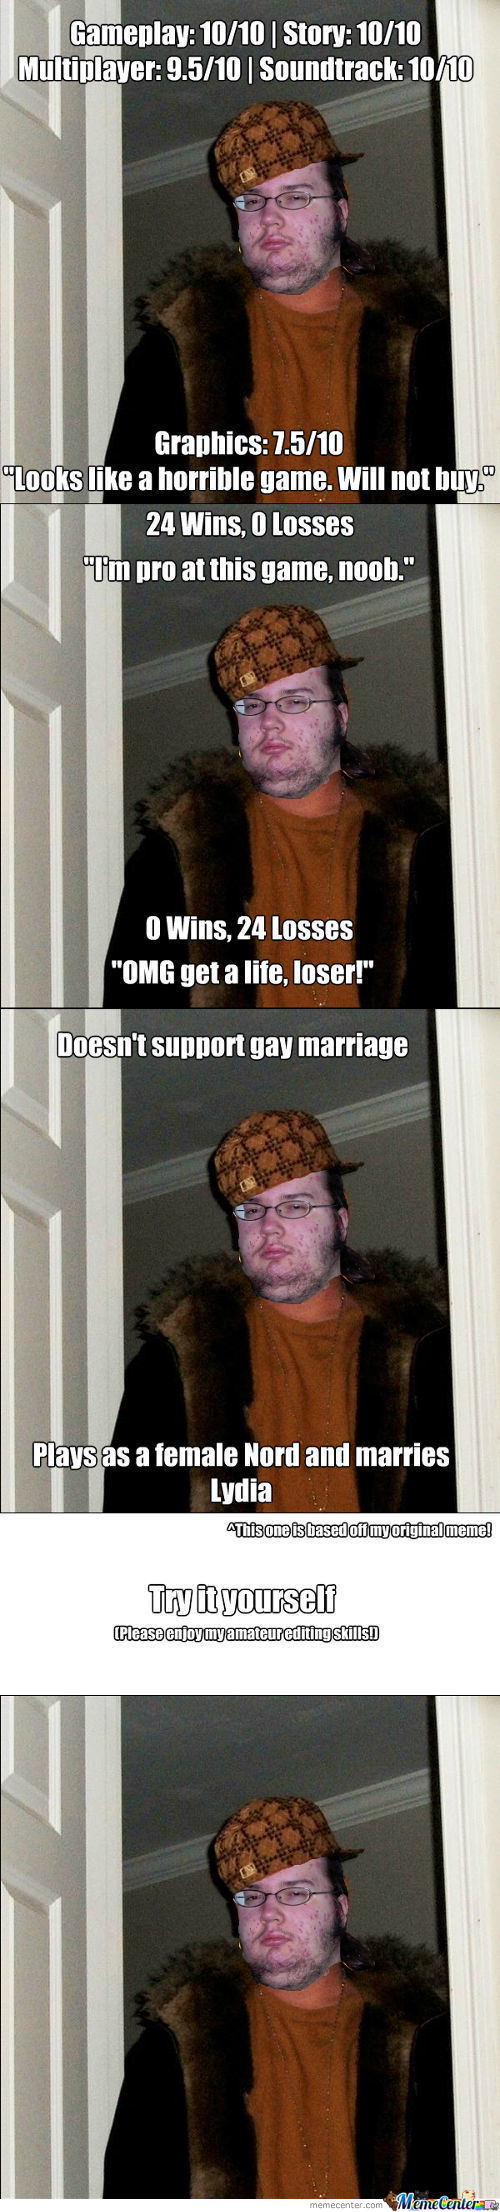 Meme Idea: Scumbag Gamer